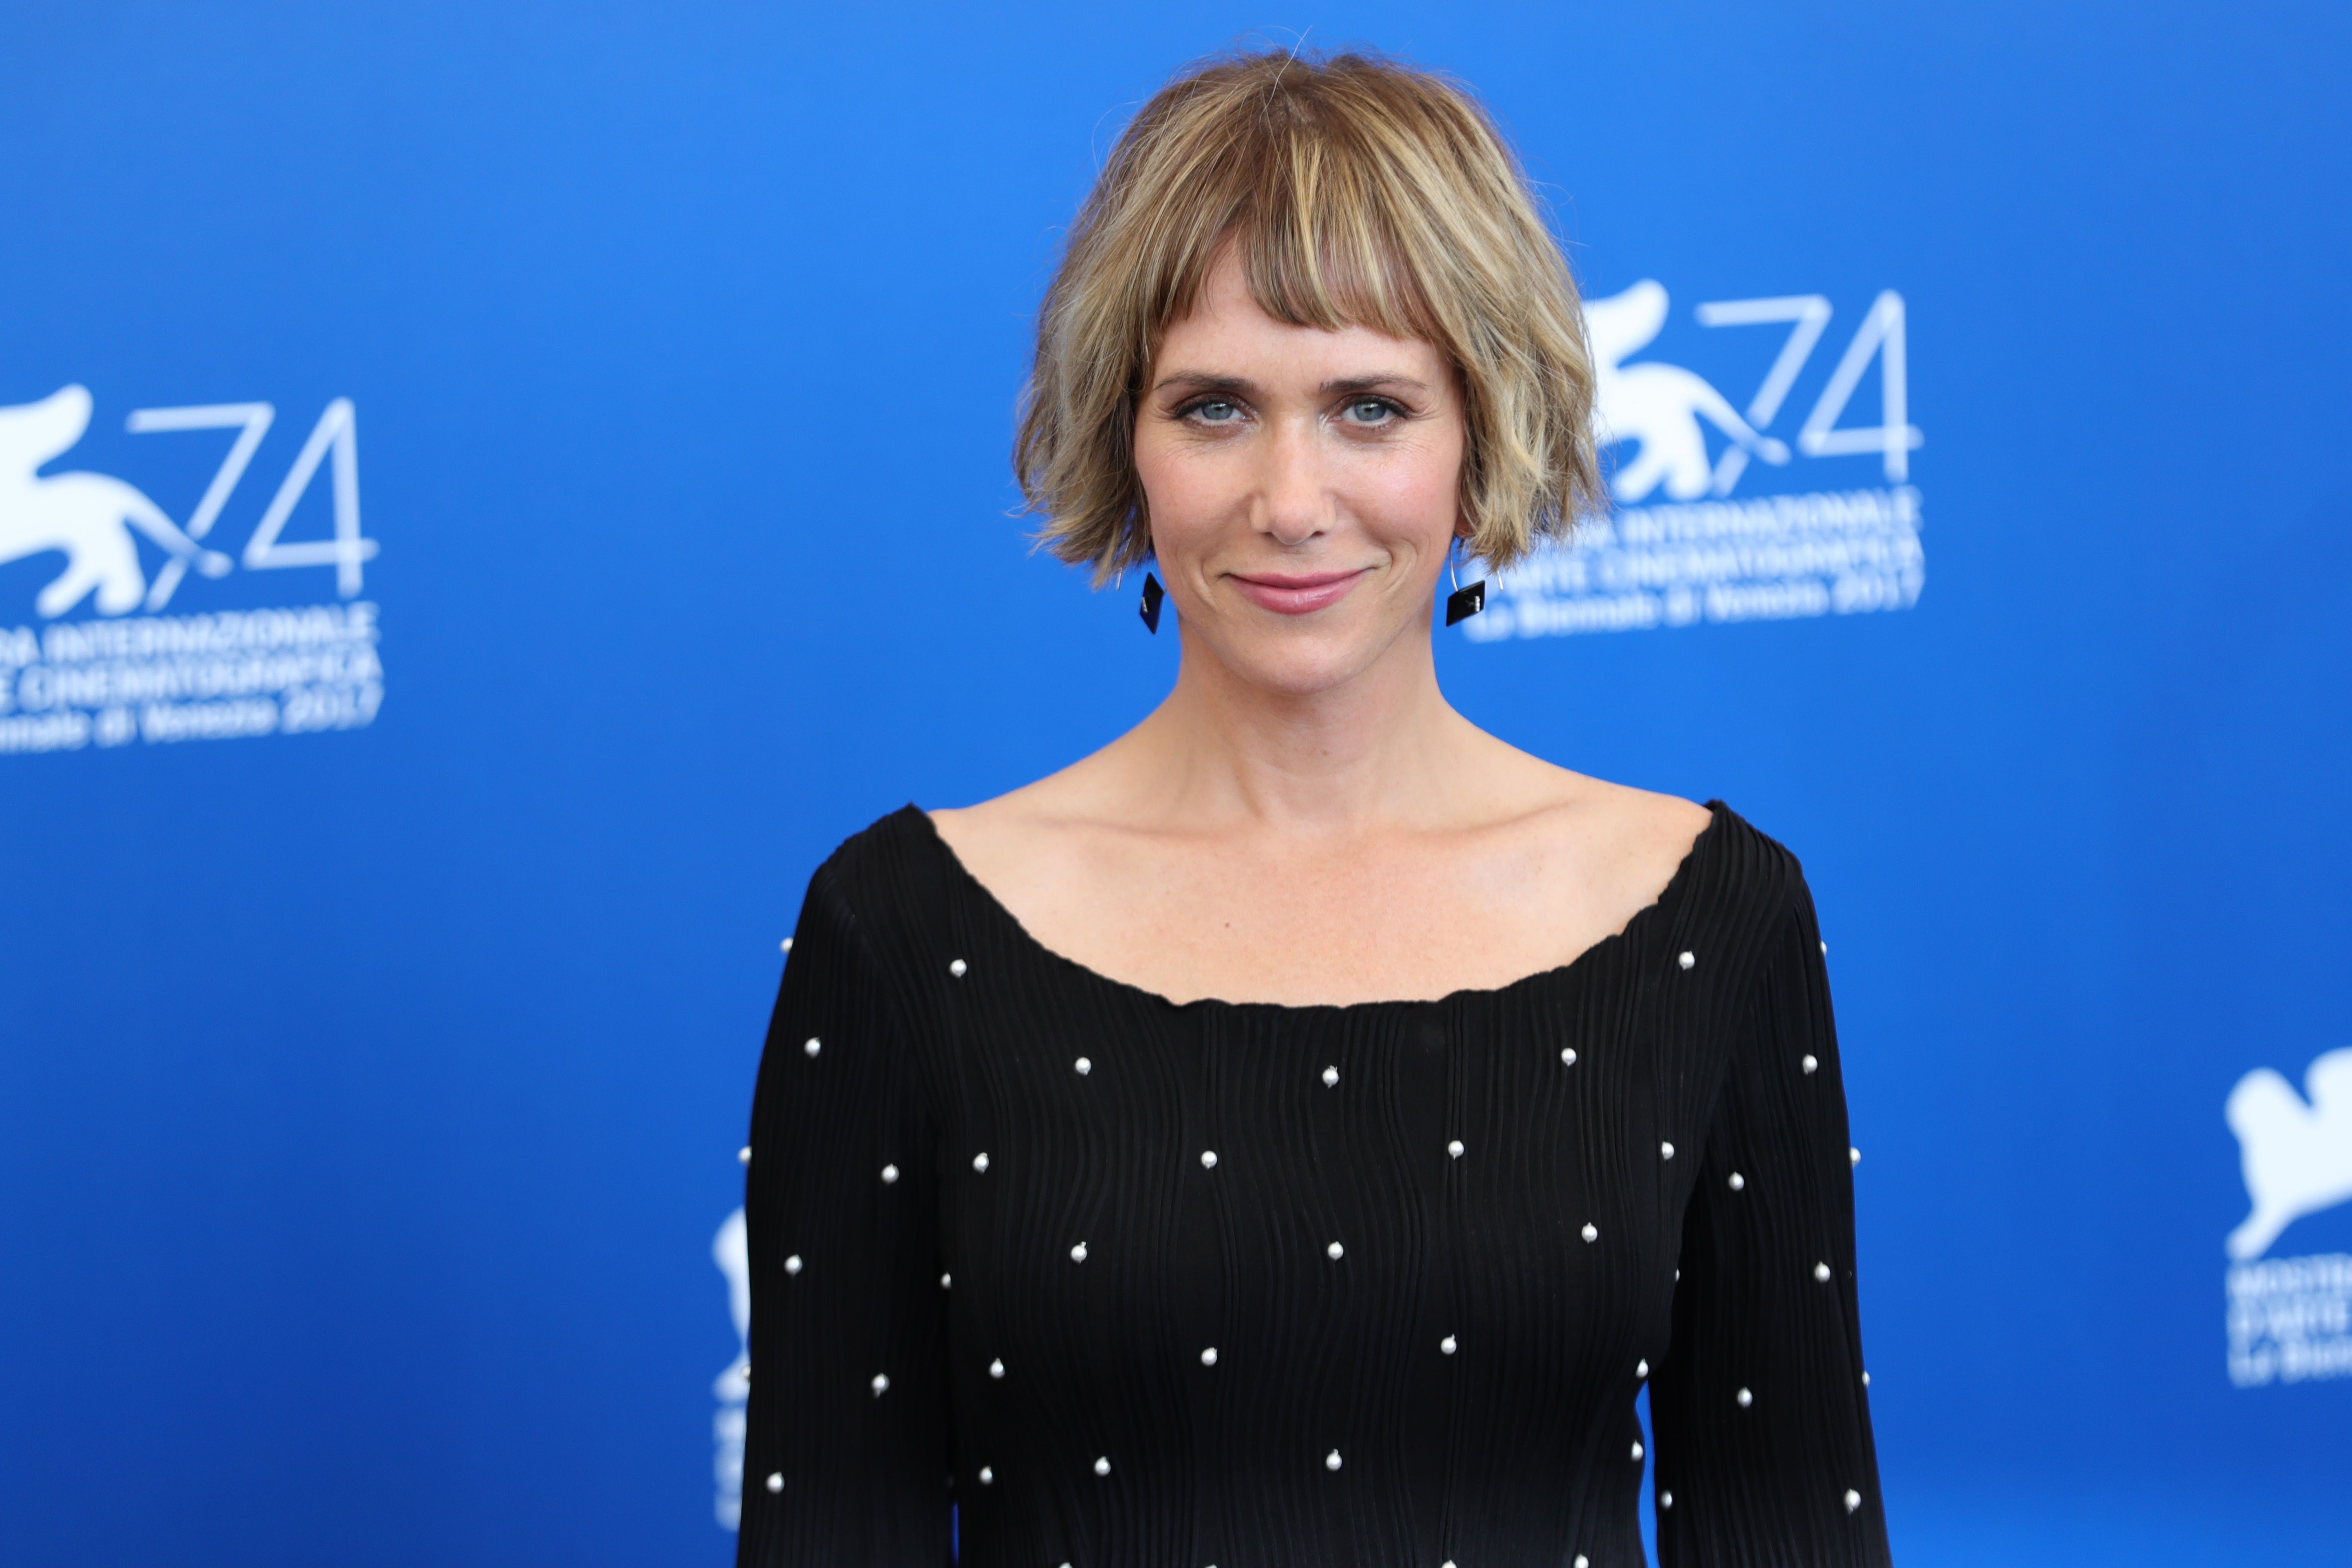 Watch Kristen Wiig video